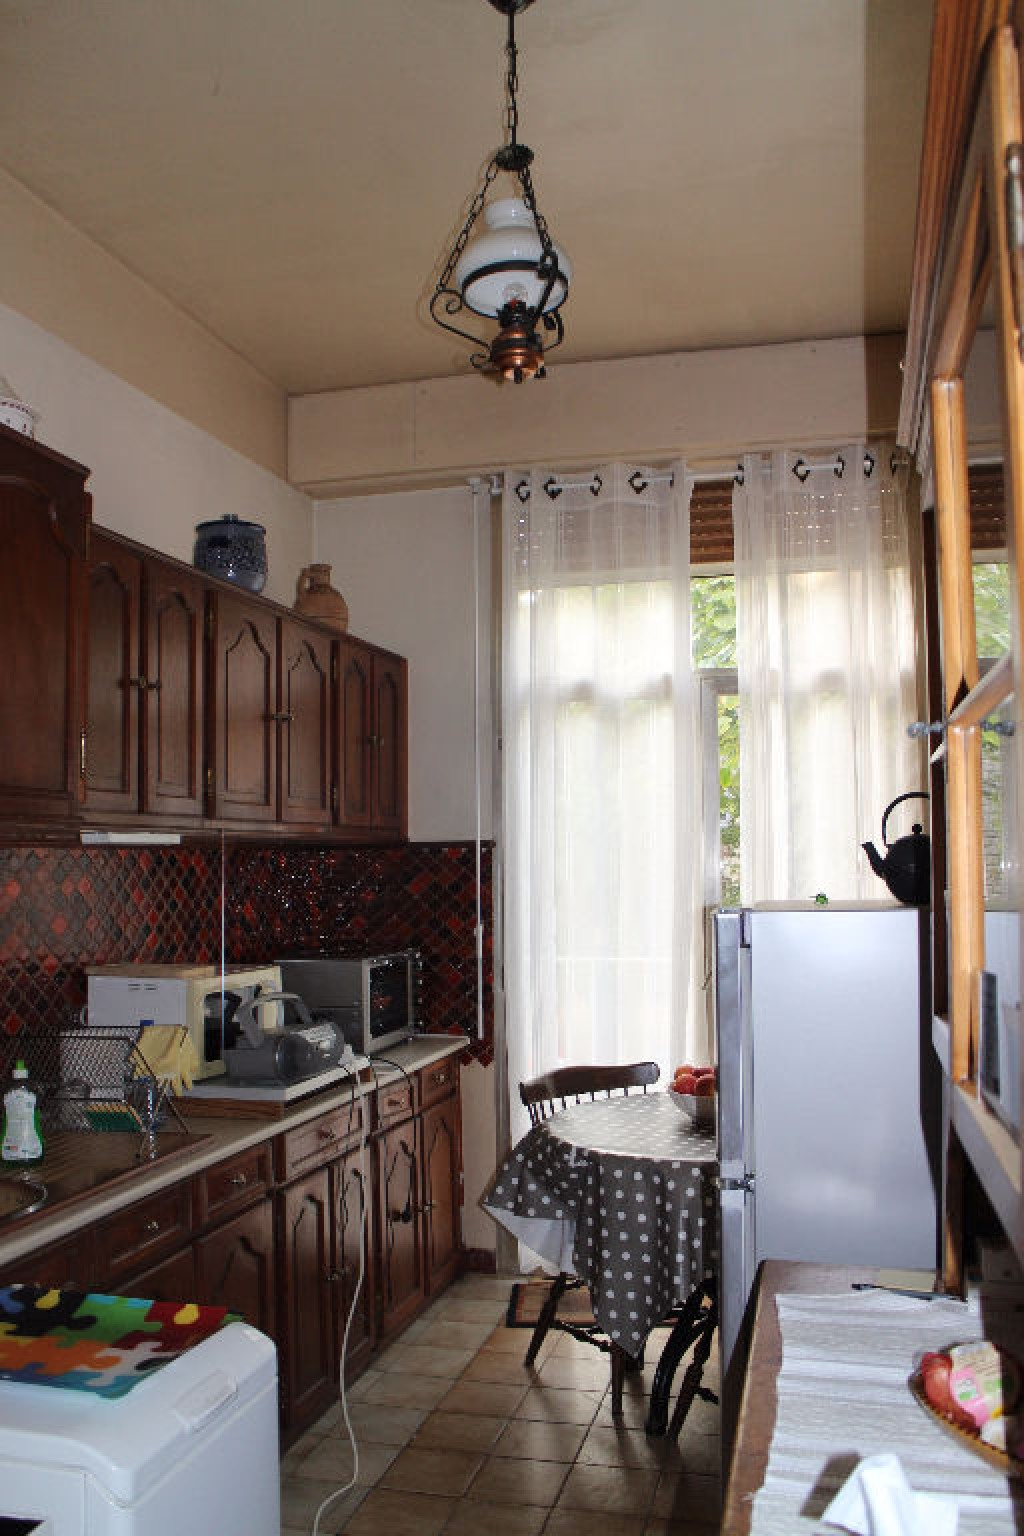 Vente versailles grand si cle grand 2 pi ces - Residence grand siecle versailles ...